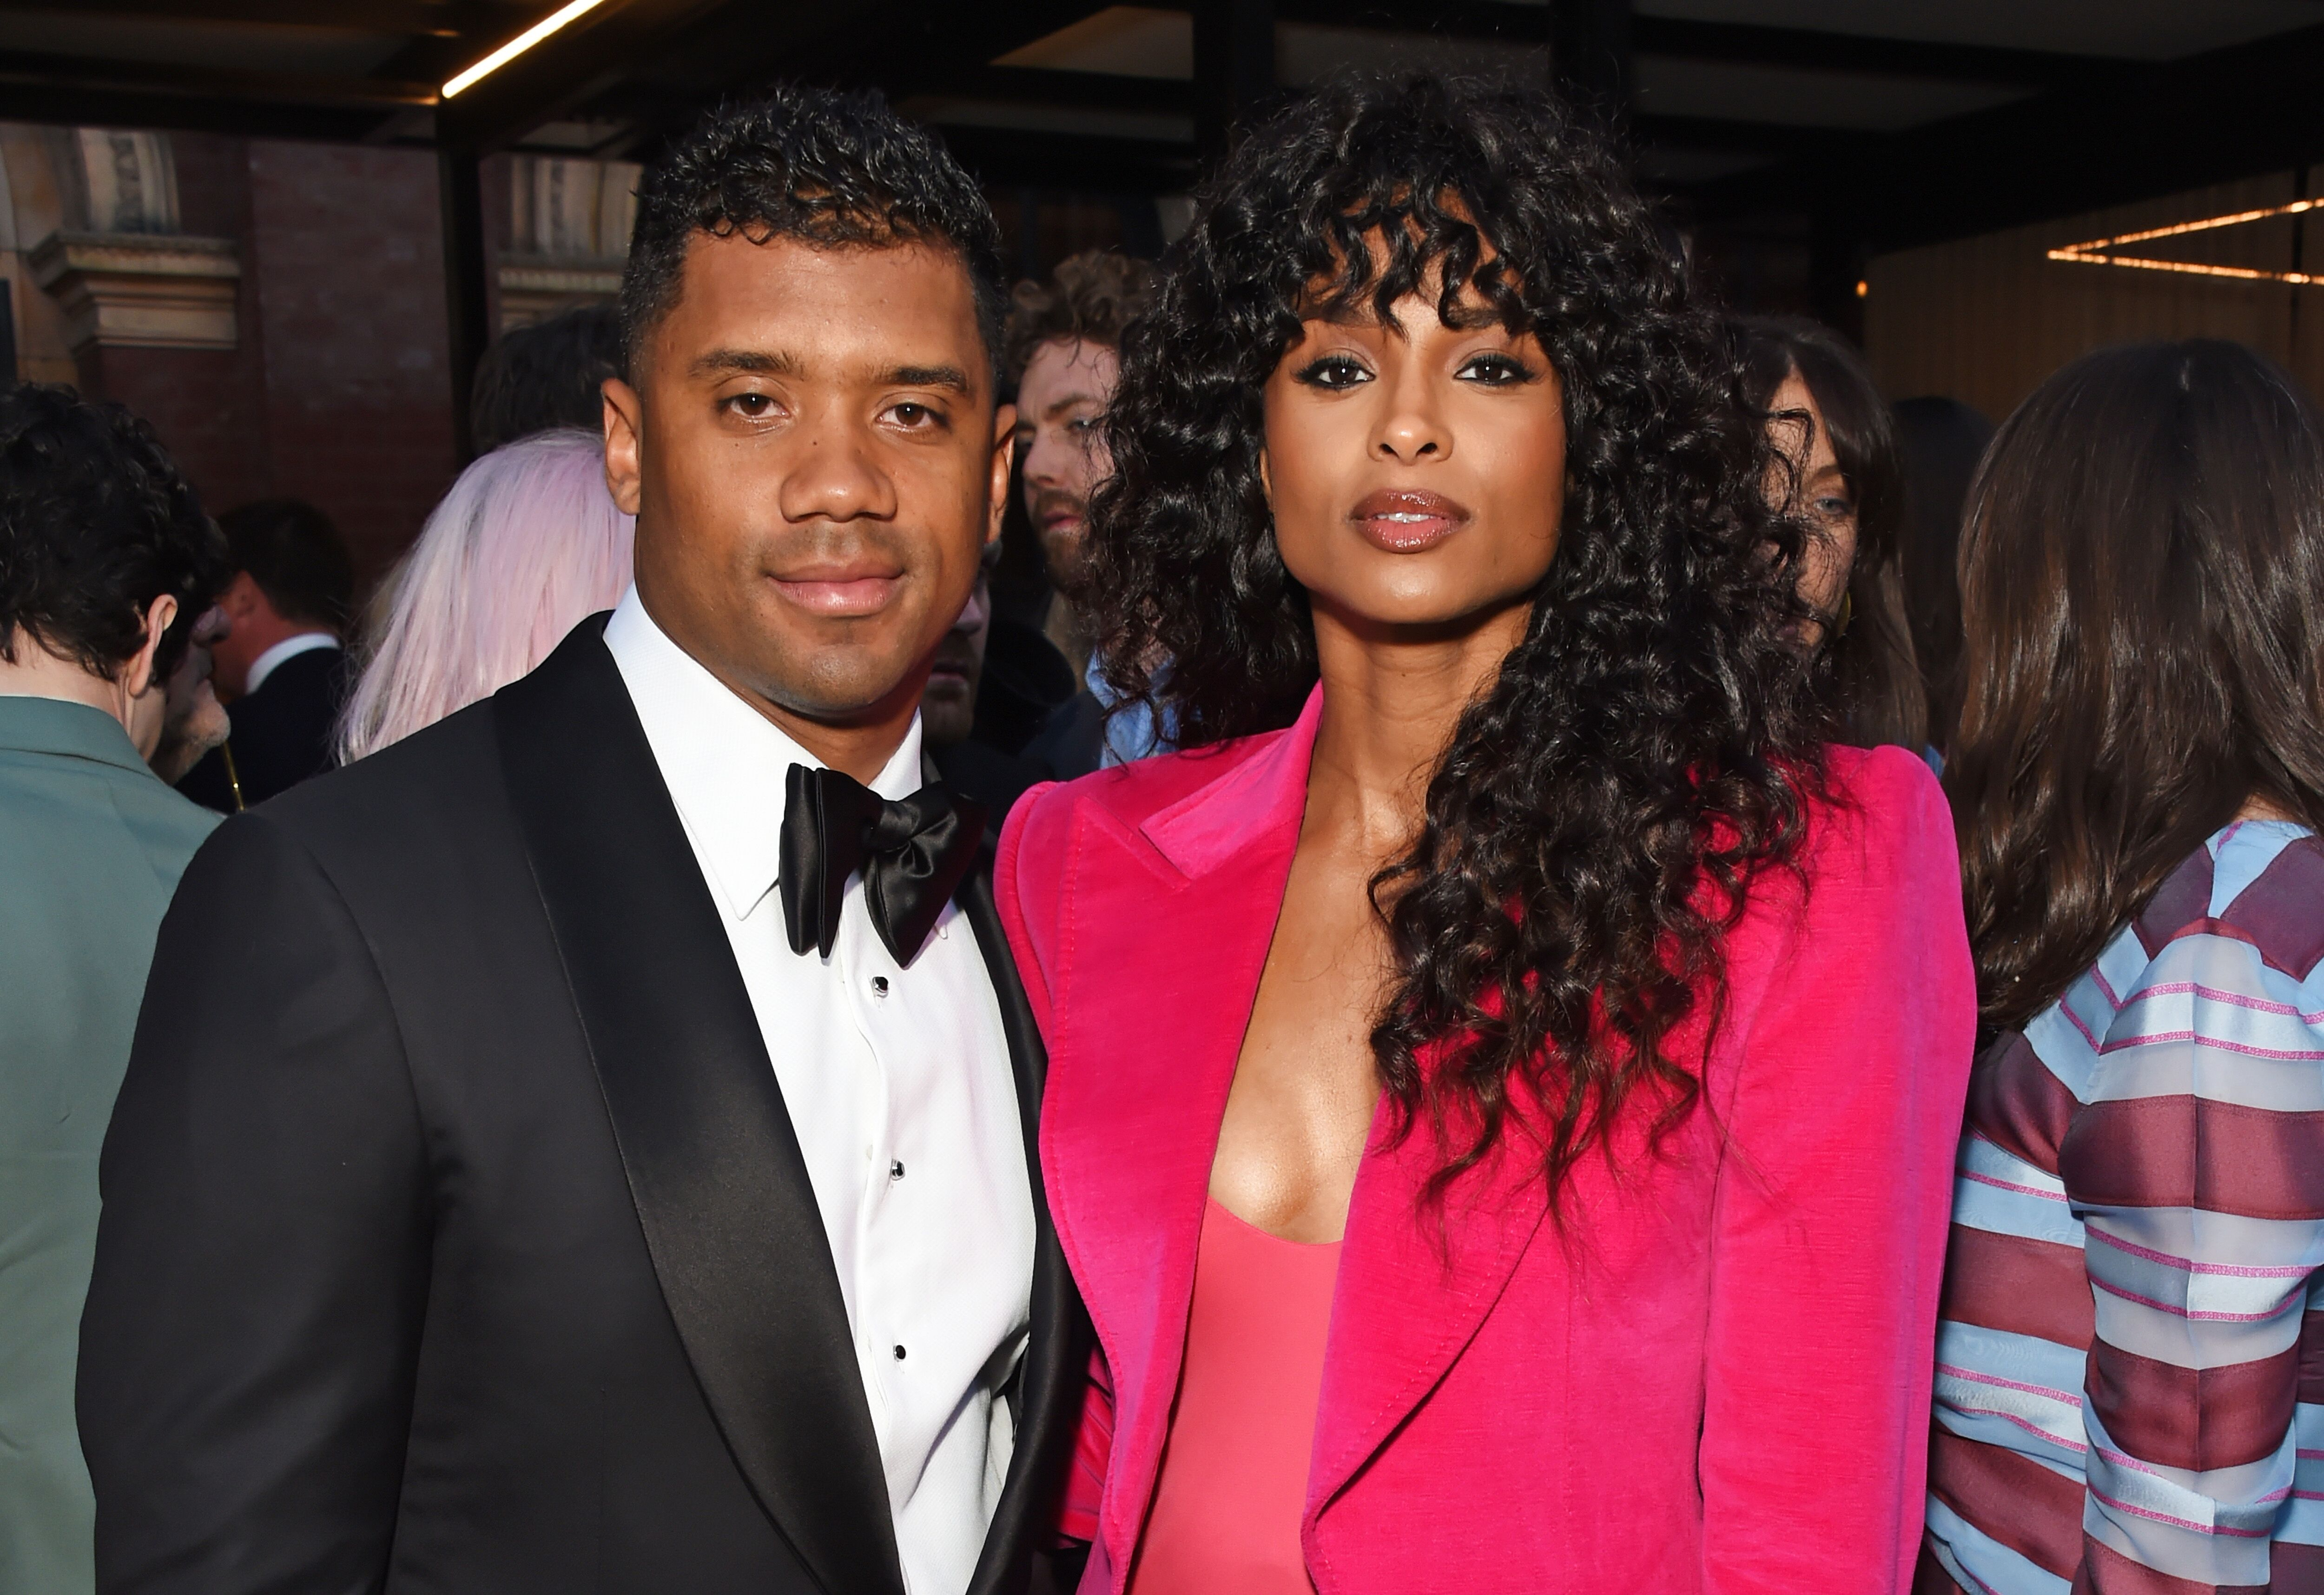 Russell Wilson (L) and Ciara attend the Summer Party at the V&A in partnership with Harrods at the Victoria and Albert Museum on June 20, 2018 | Photo: Getty Images